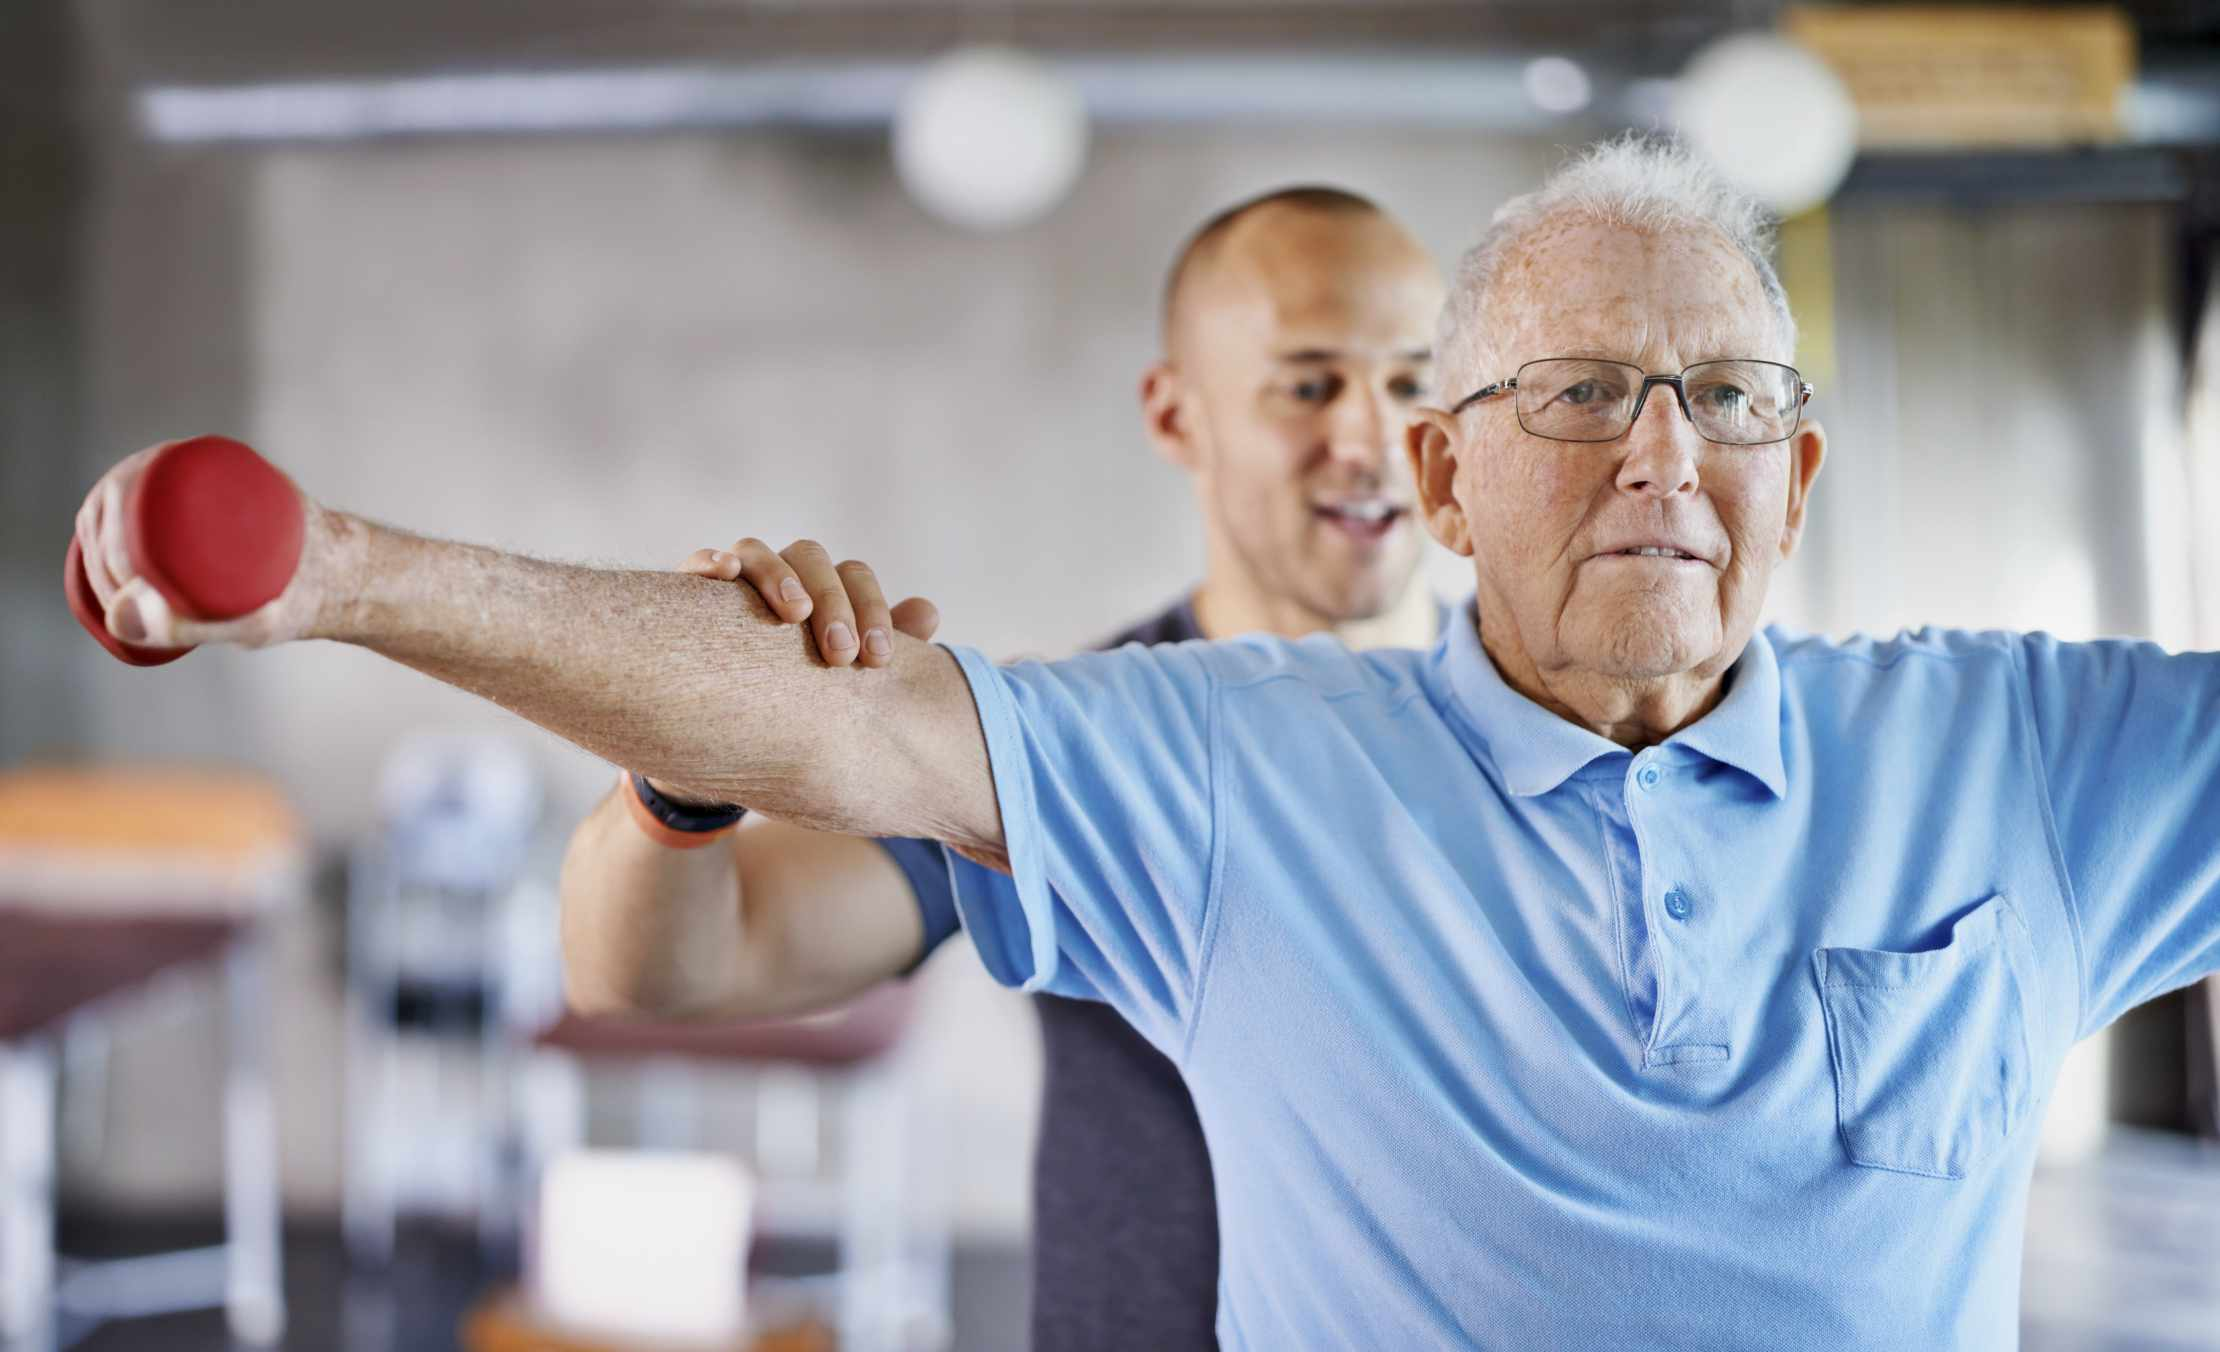 Man completing physical therapy in gym